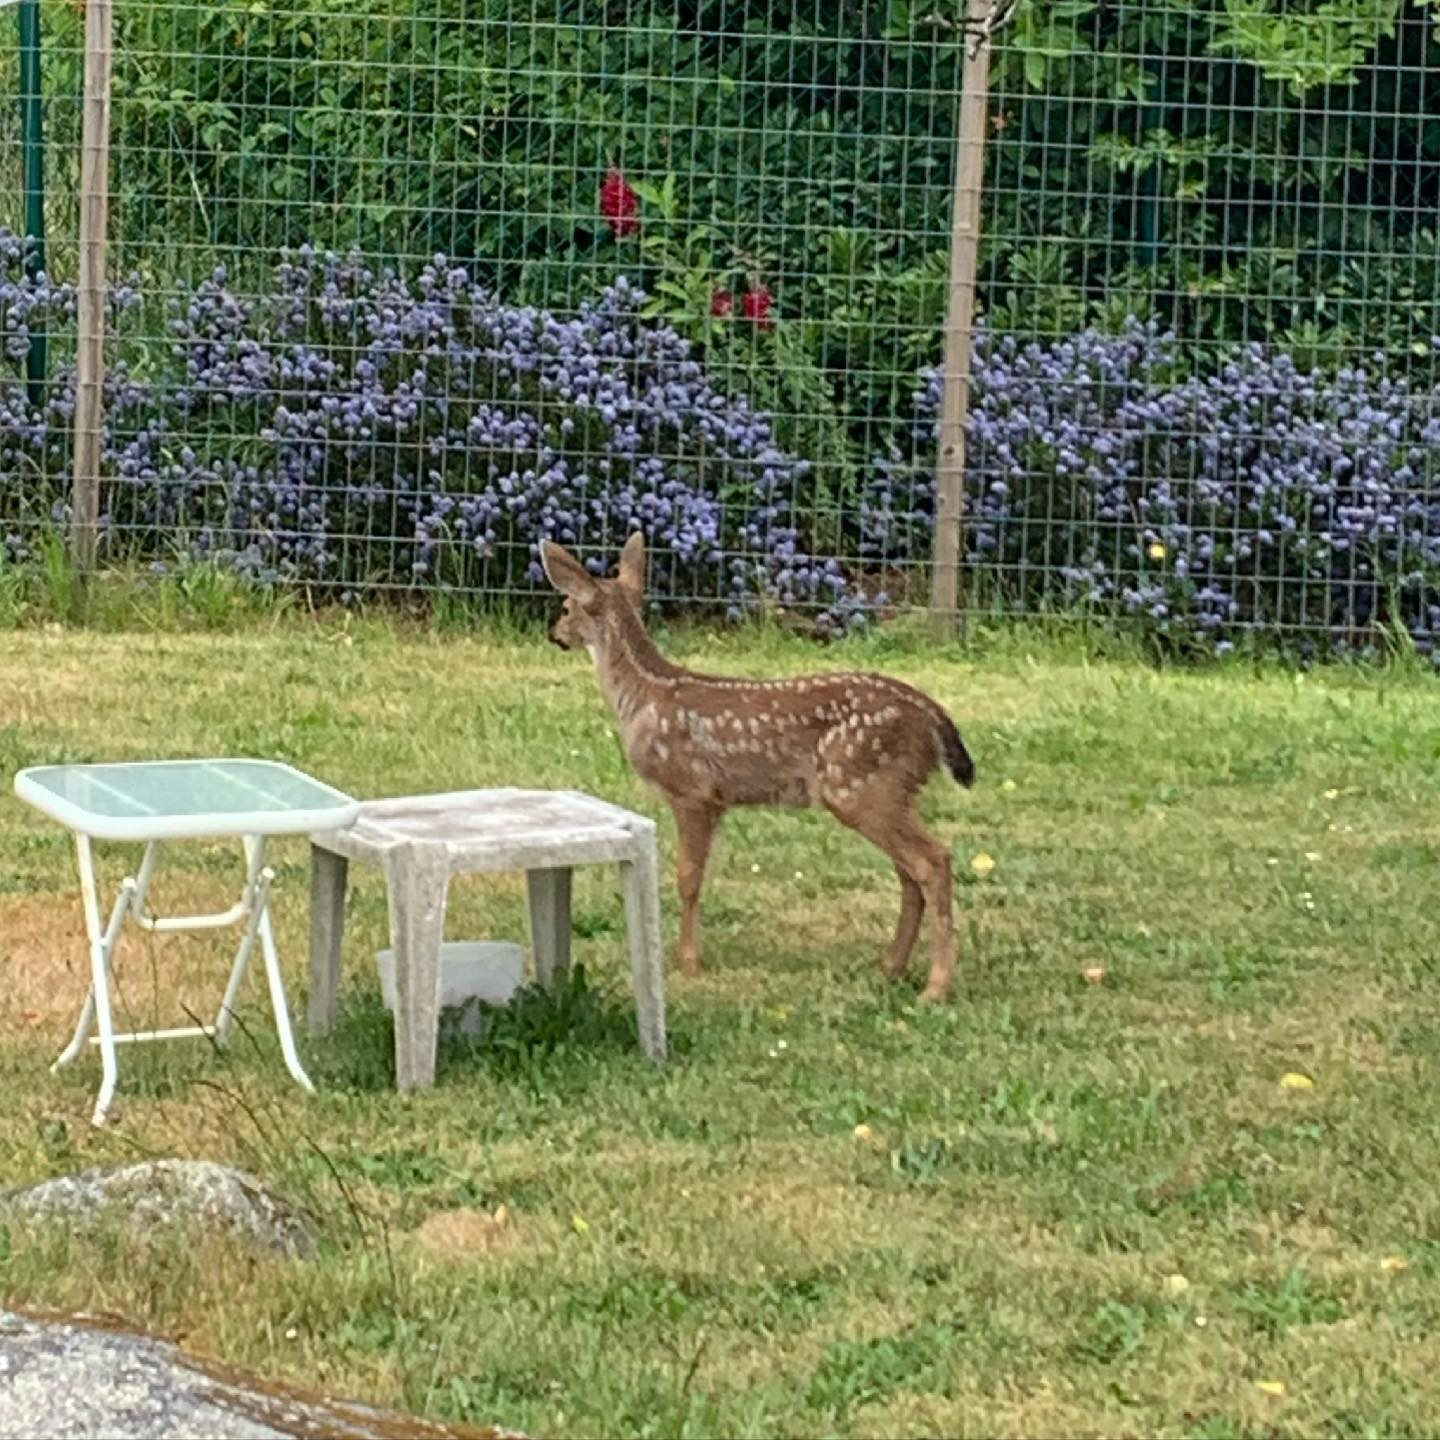 Well, it's that time of year again. #esquimalt #deer #fawns